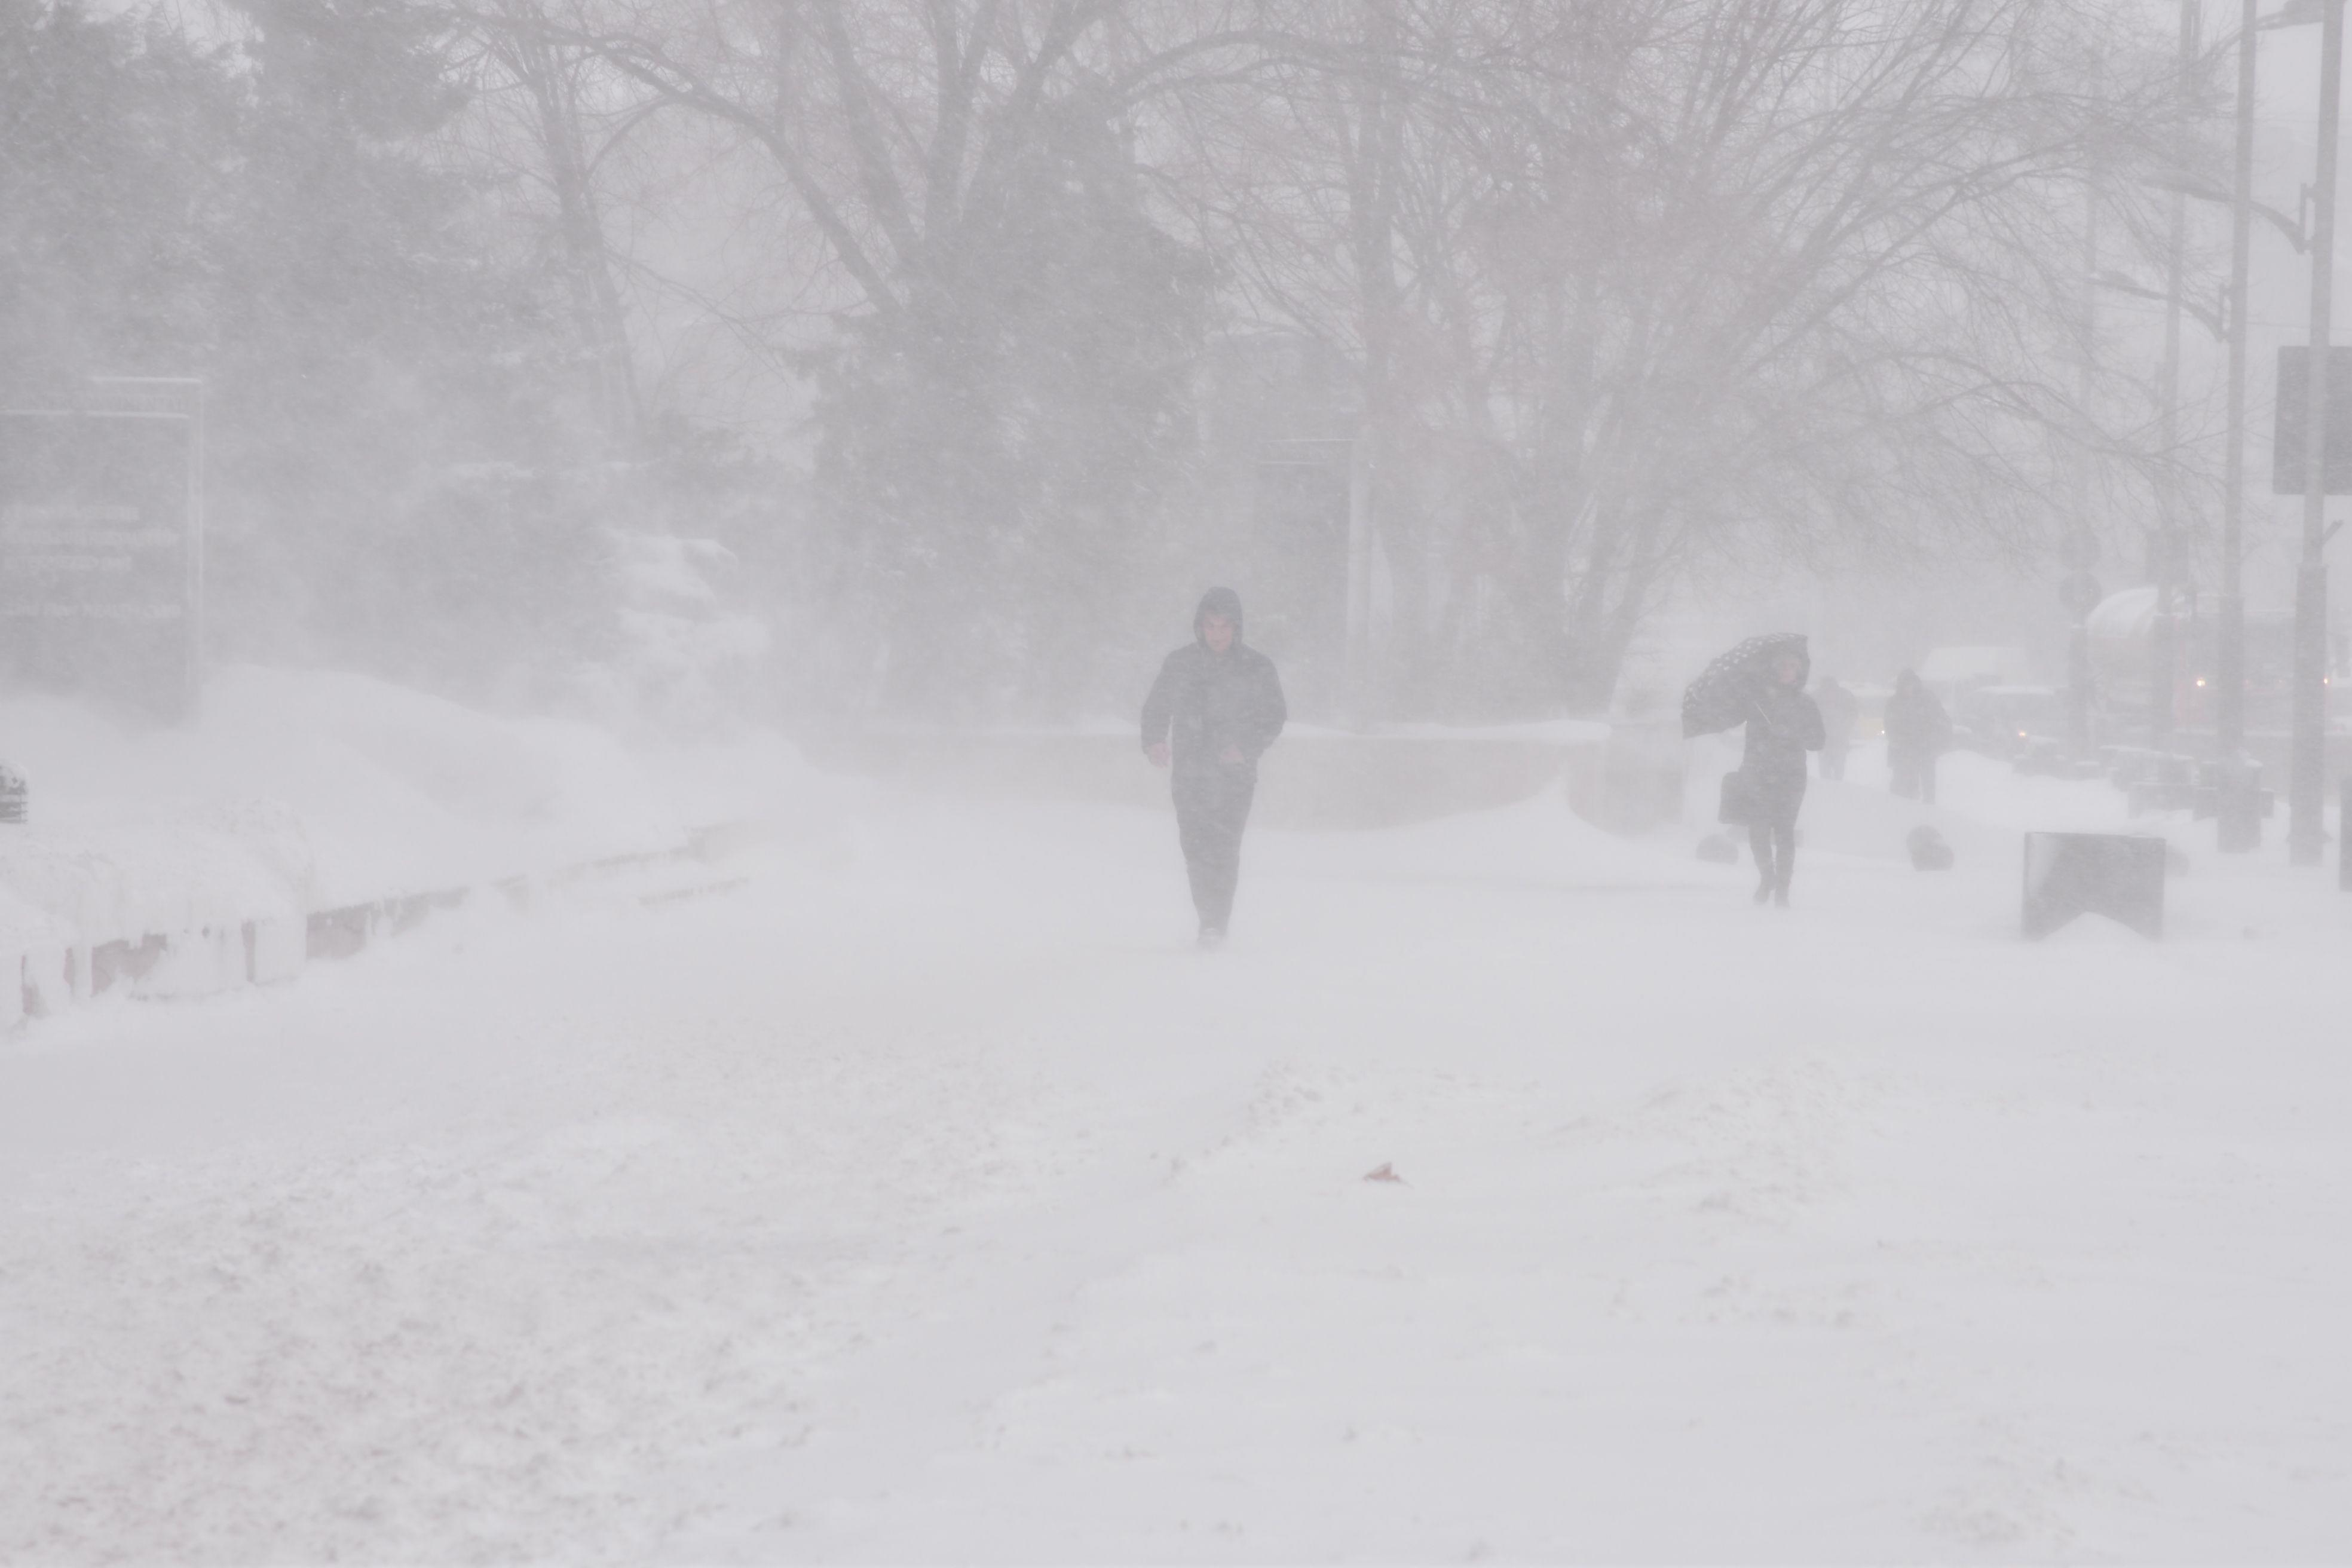 Extreme mountain and snowstorm this week! Weather Forecast